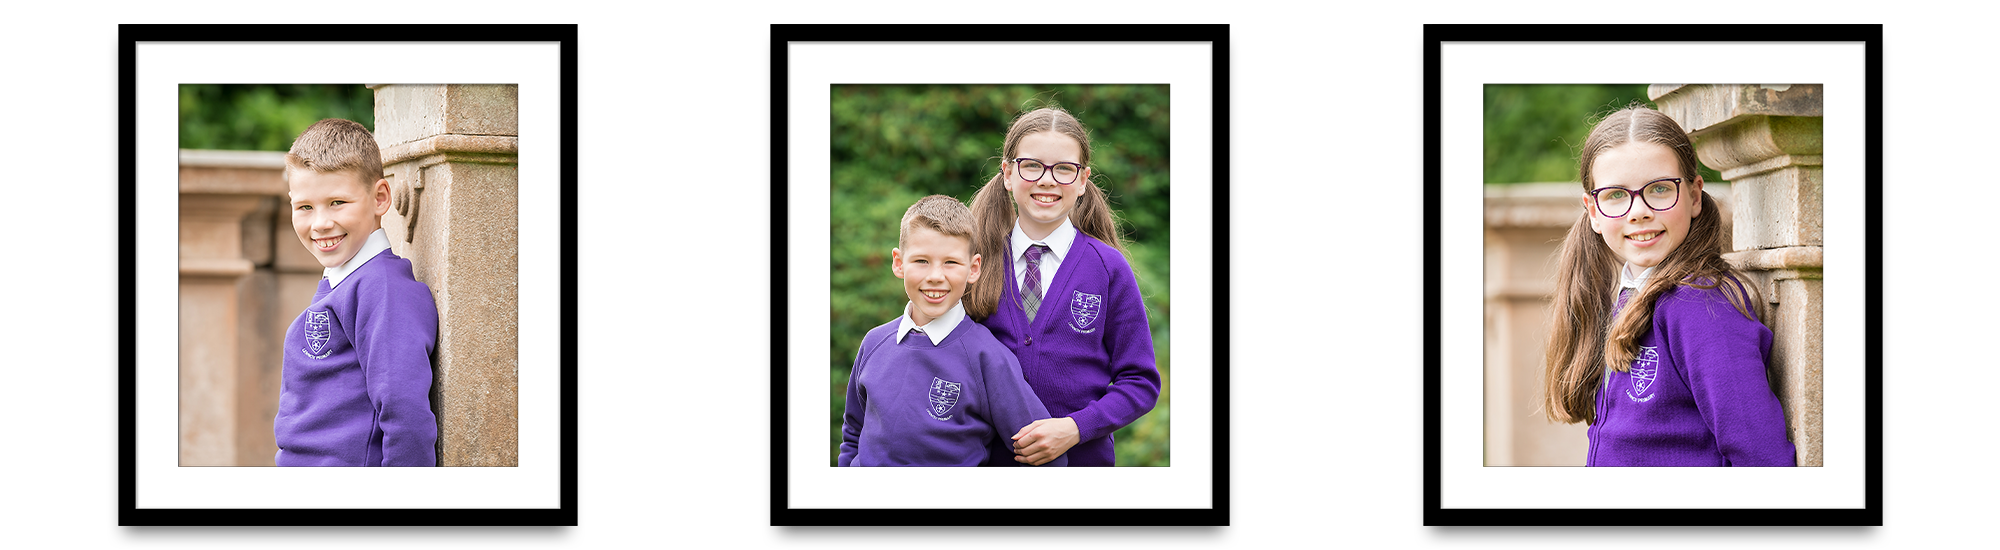 framed school photos brother and sister siblings Lennox Primary School Alexandria Life in Focus Portraits school photography West Dunbartonshire